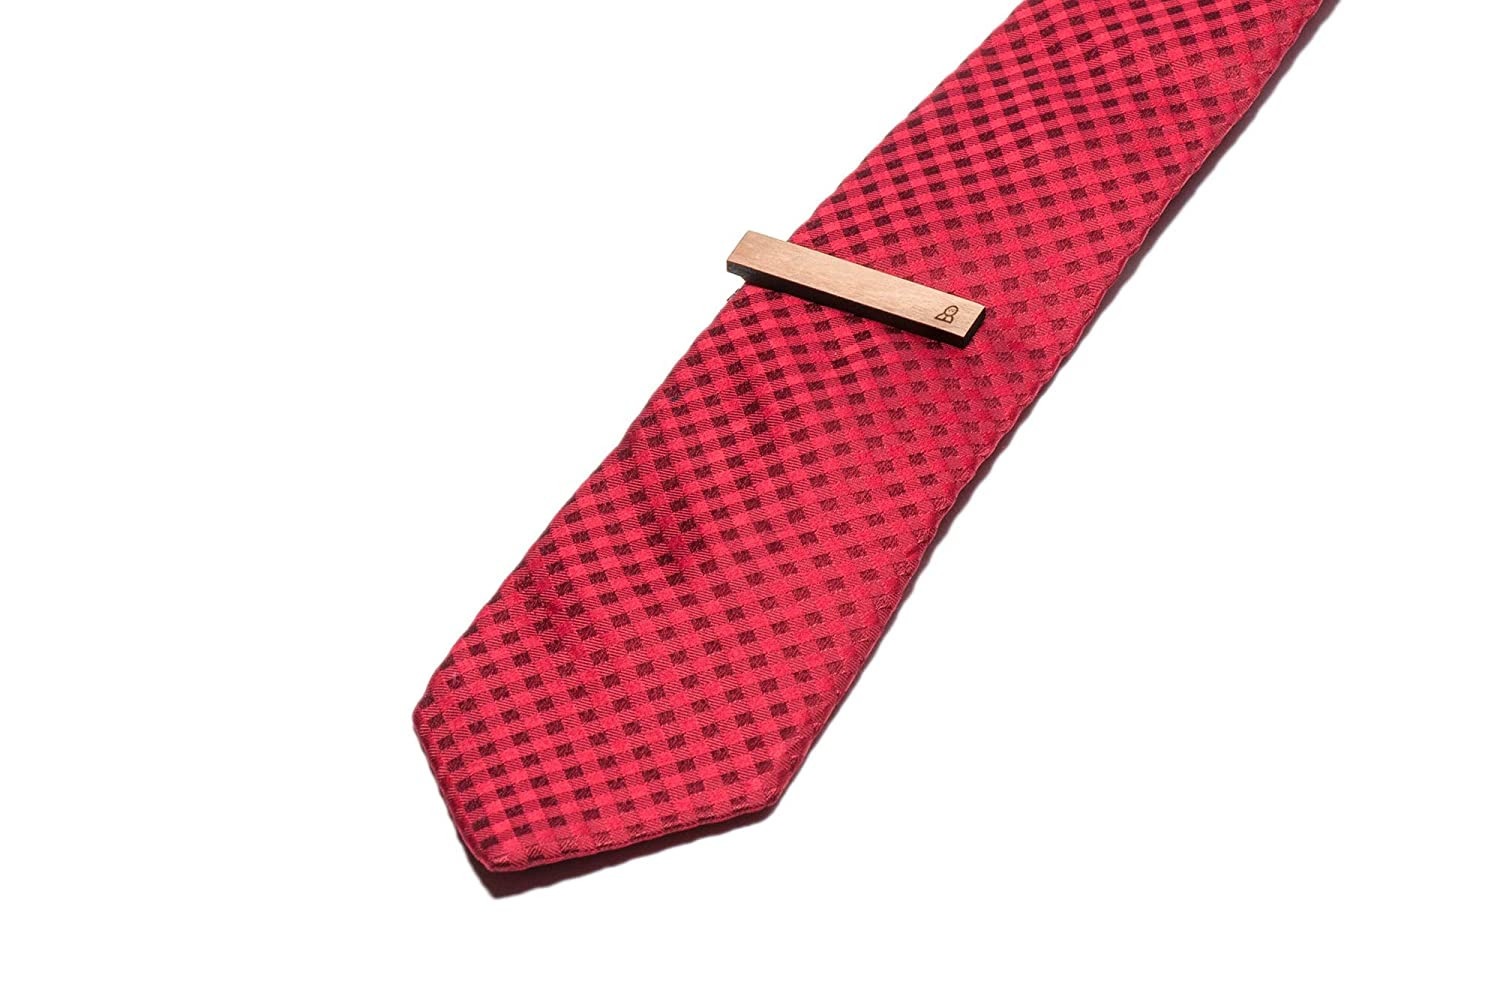 Cherry Wood Tie Bar Engraved in The USA Wooden Accessories Company Wooden Tie Clips with Laser Engraved Smiling Person Design